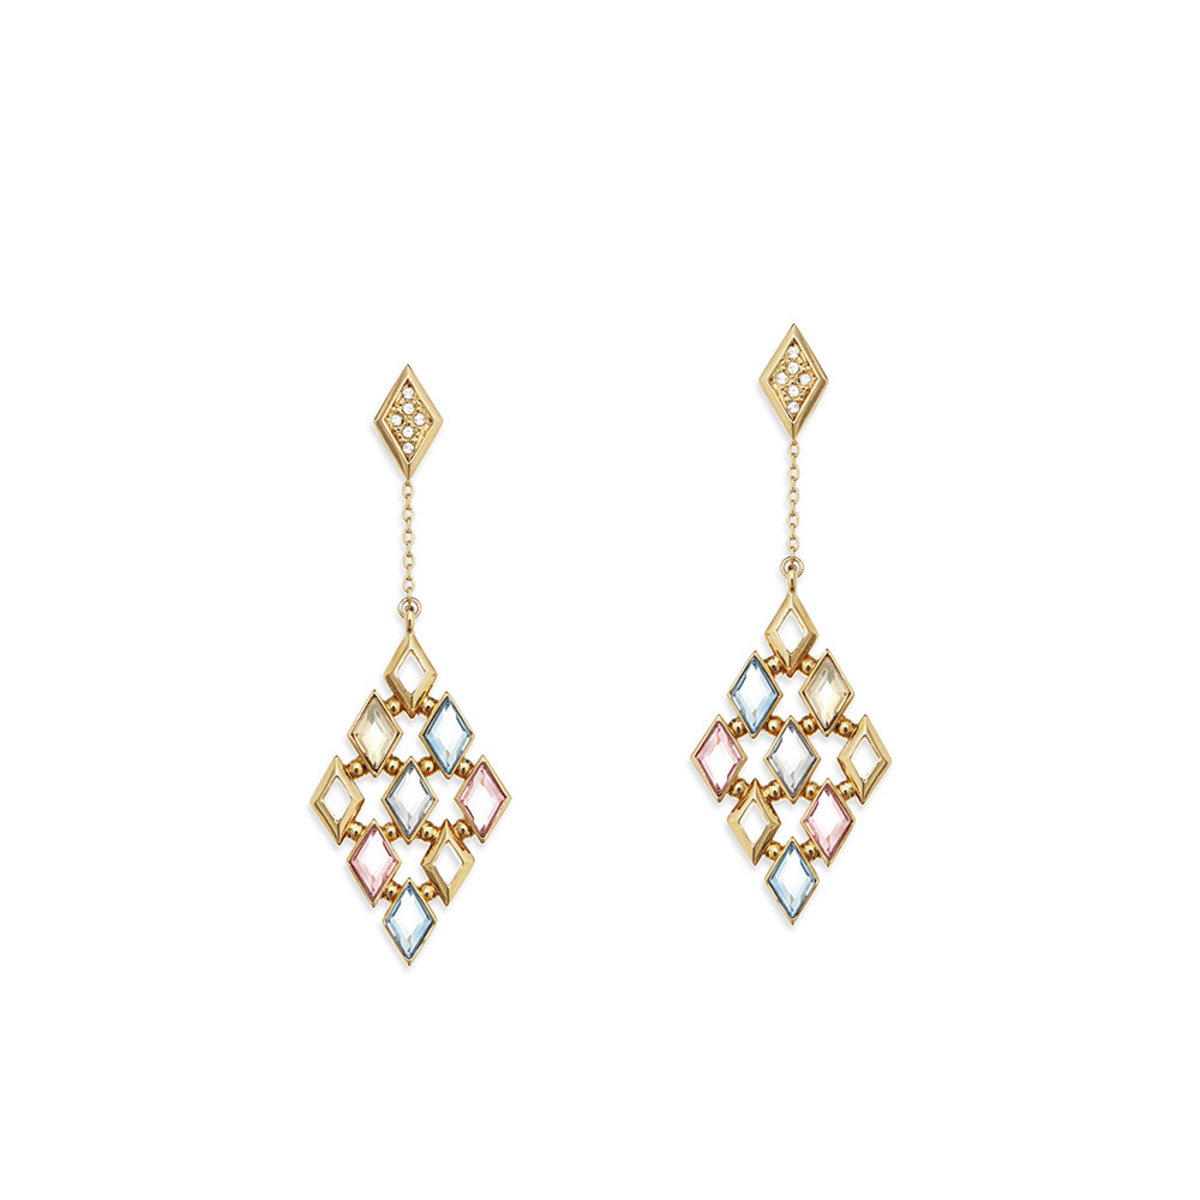 Glitter: gold plating, multi-coloured Swarovski crystal, 2-way pierced earrings